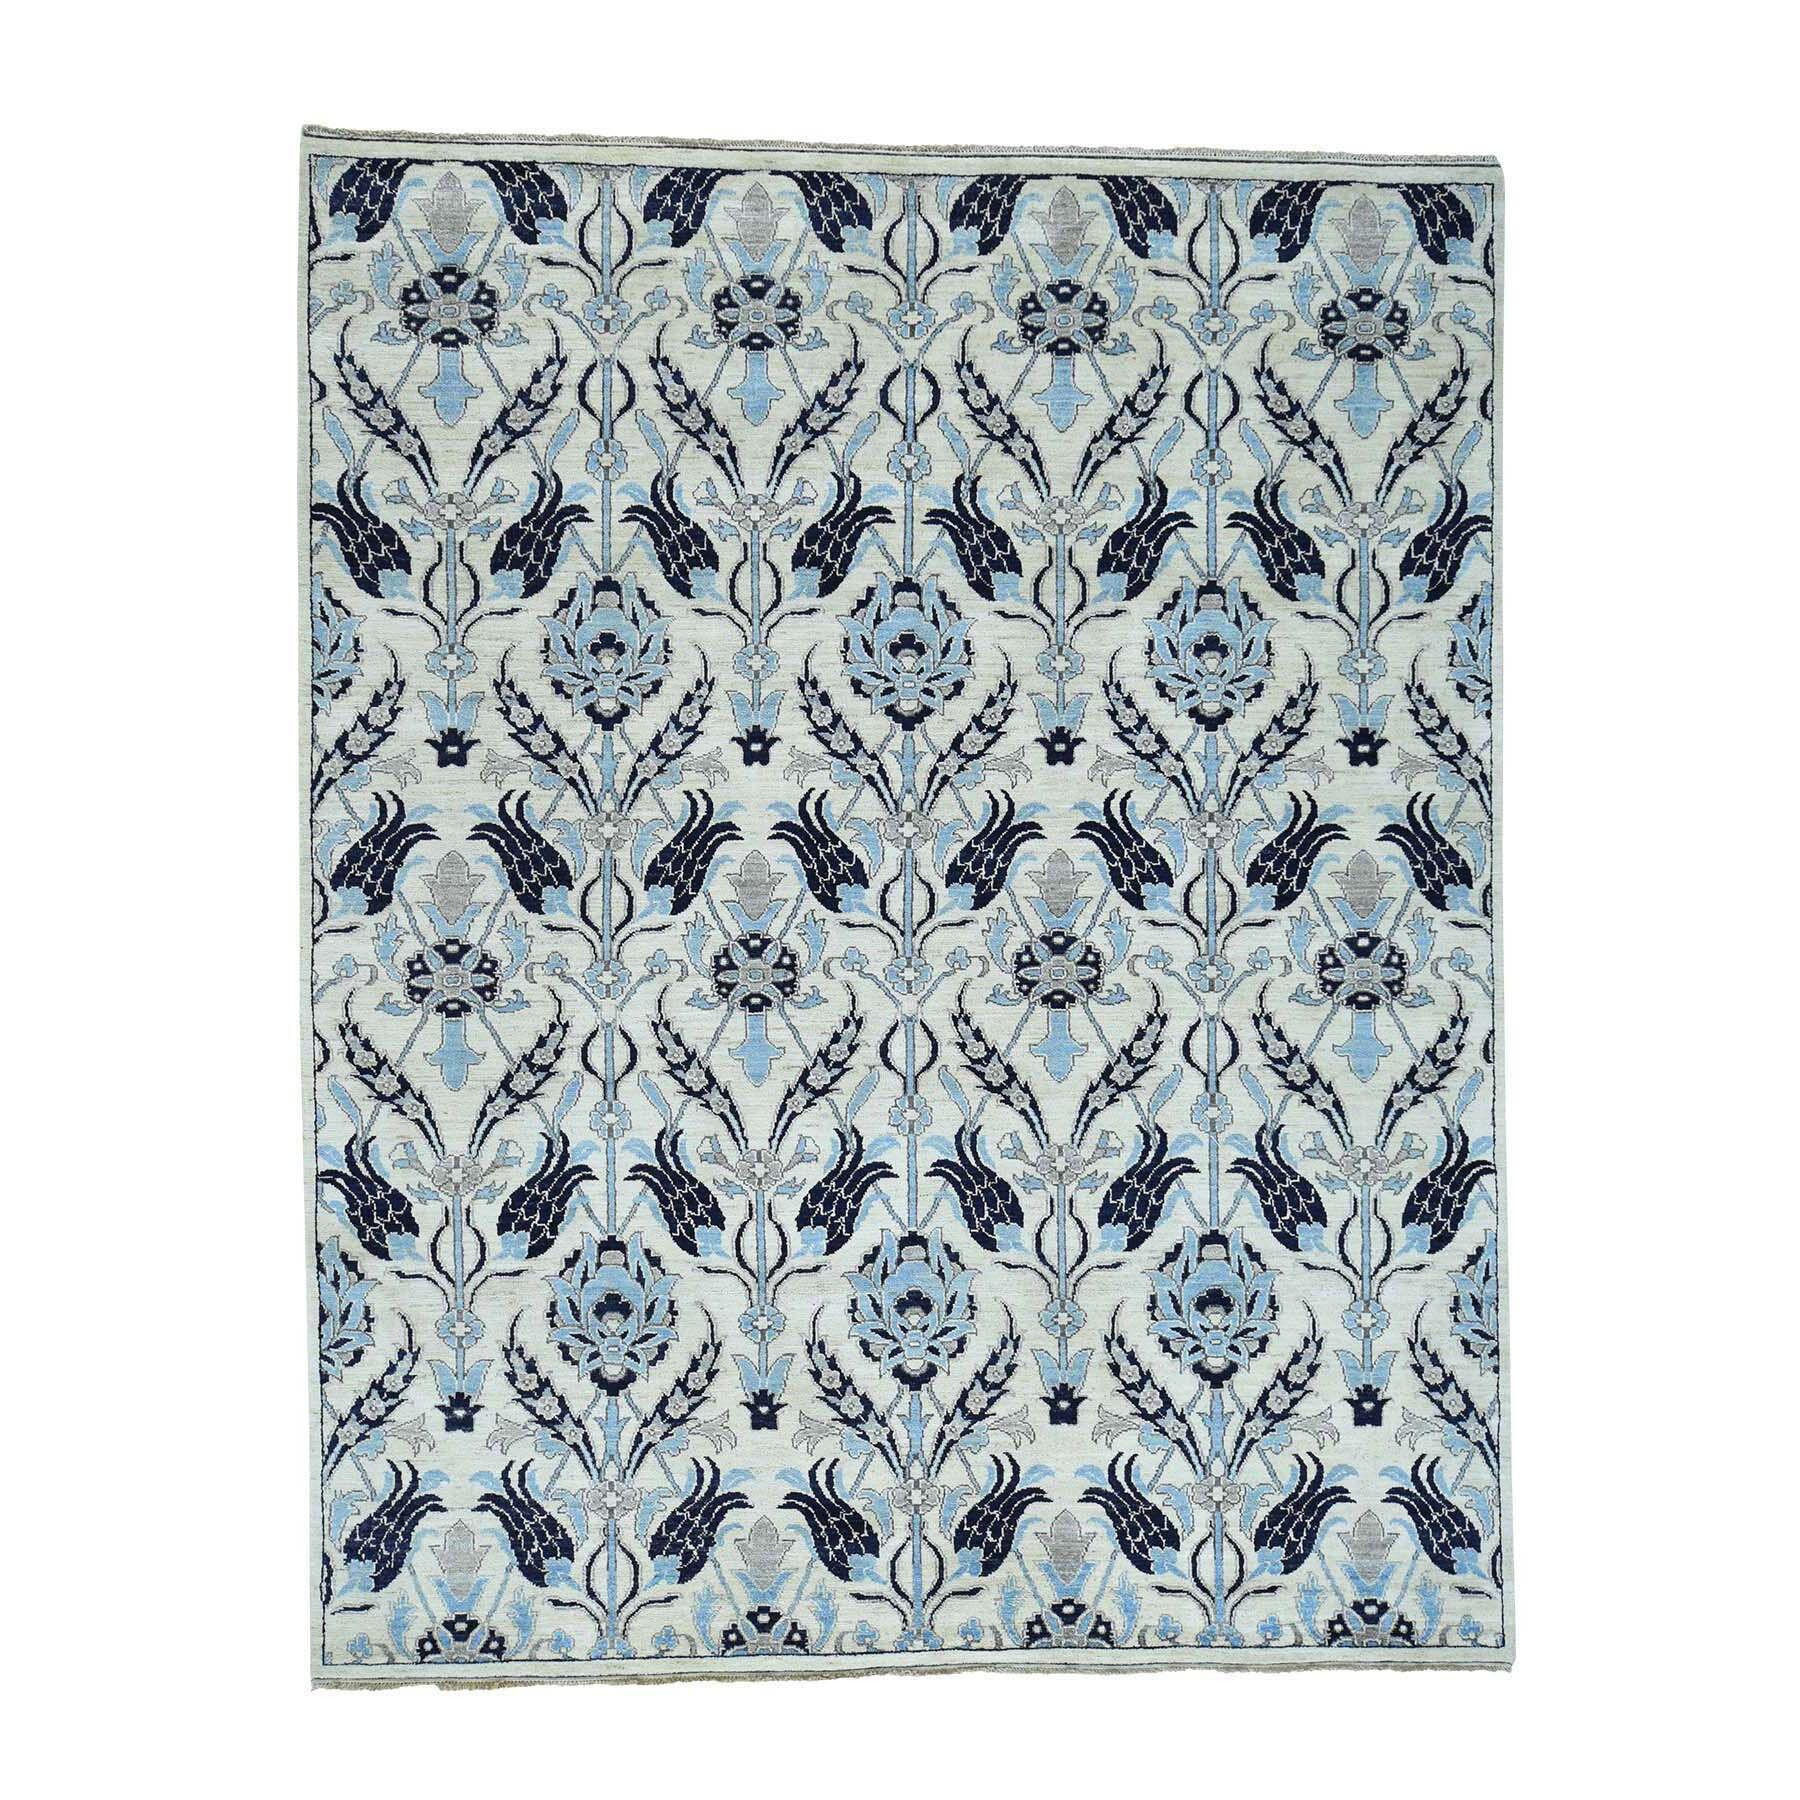 One-of-a-Kind Kells-Connor Hand-Knotted Navy Blue/Sky Blue Area Rug